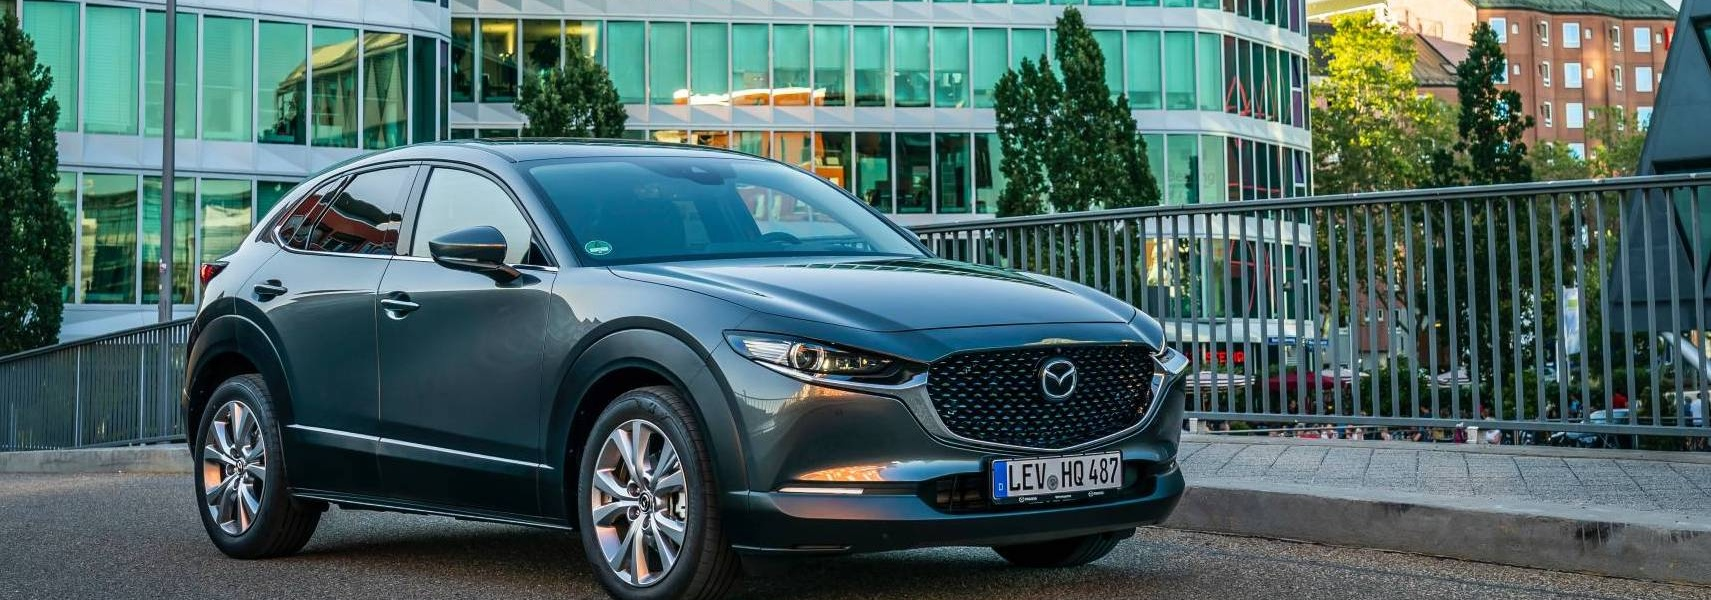 3f10be49-2020-mazda-cx-30-exterior-static-shots-15.jpg